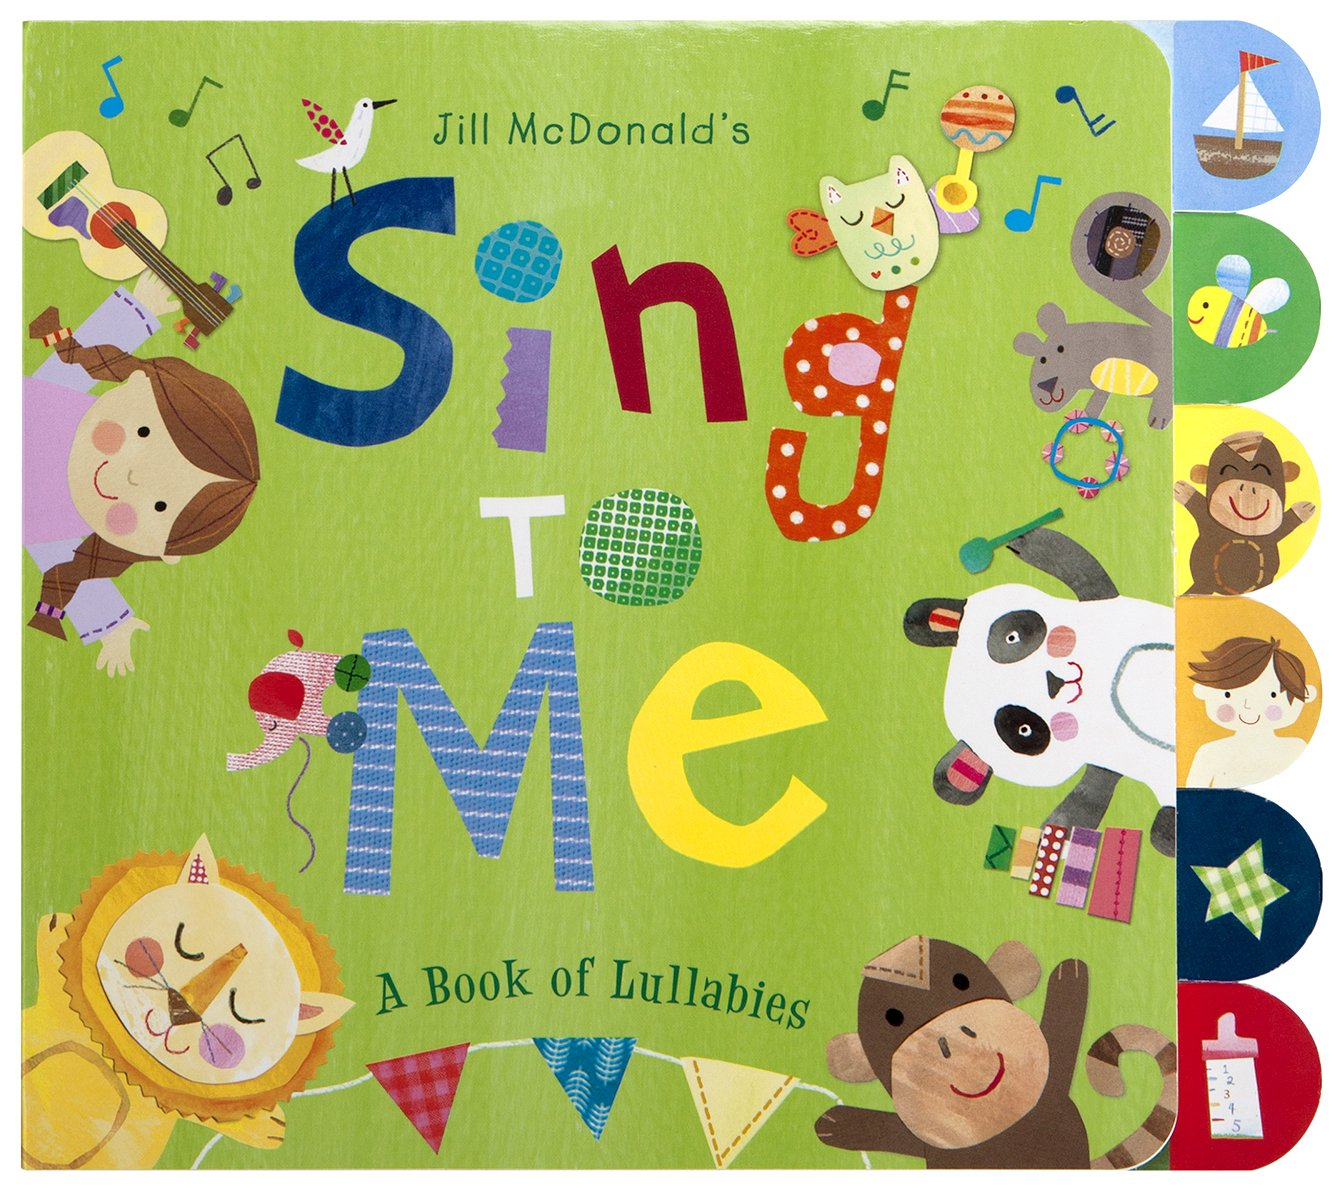 C.R. Gibson 'Sing to Me' Lullaby Book for Babies, 10 x 8.7 x 0.5 inches, 1 piece